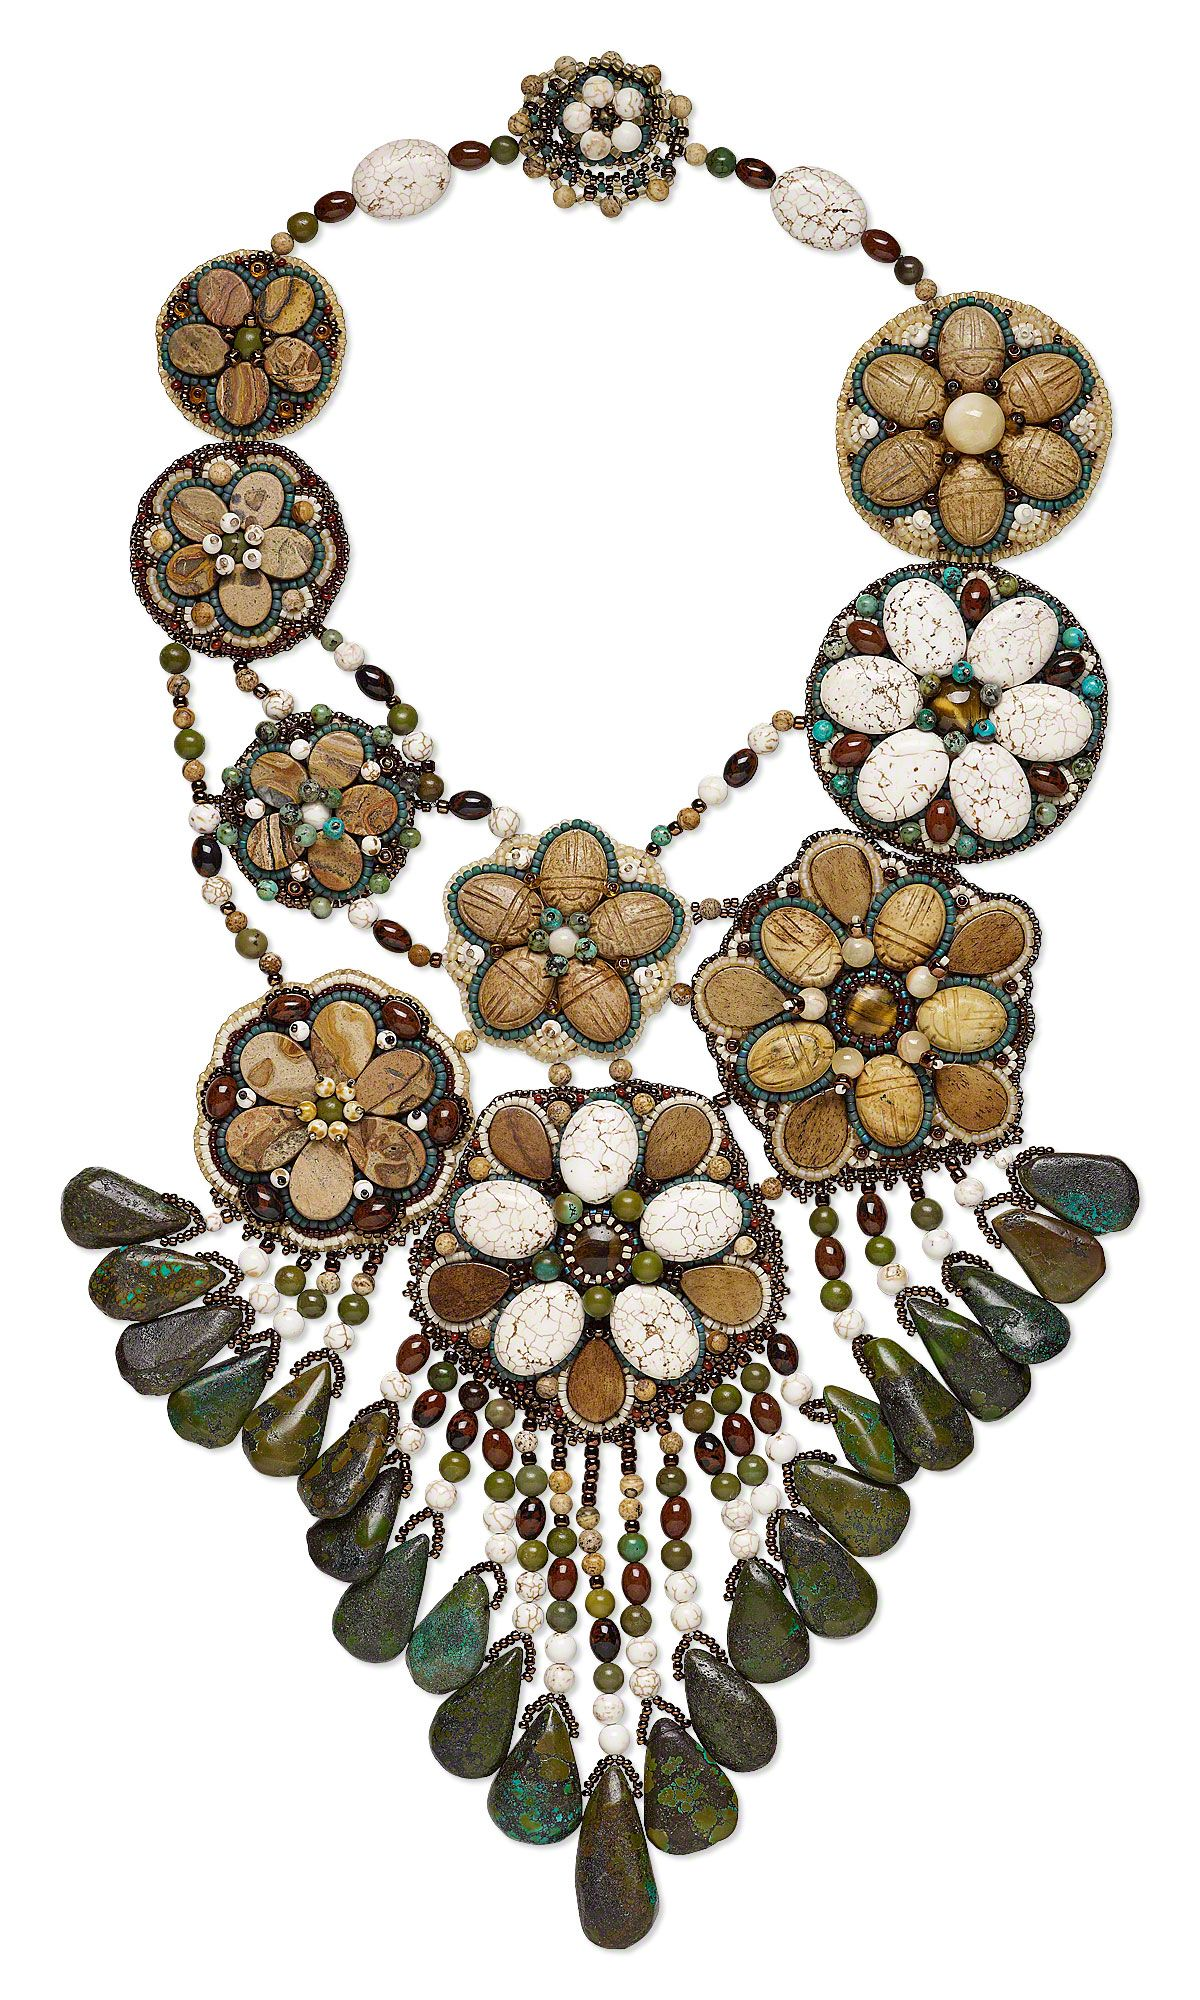 Jewelry Design - Bib-Style Necklace with Gemstone Beads, Bone Drops and Seed Beads - Fire Mountain Gems and Beads